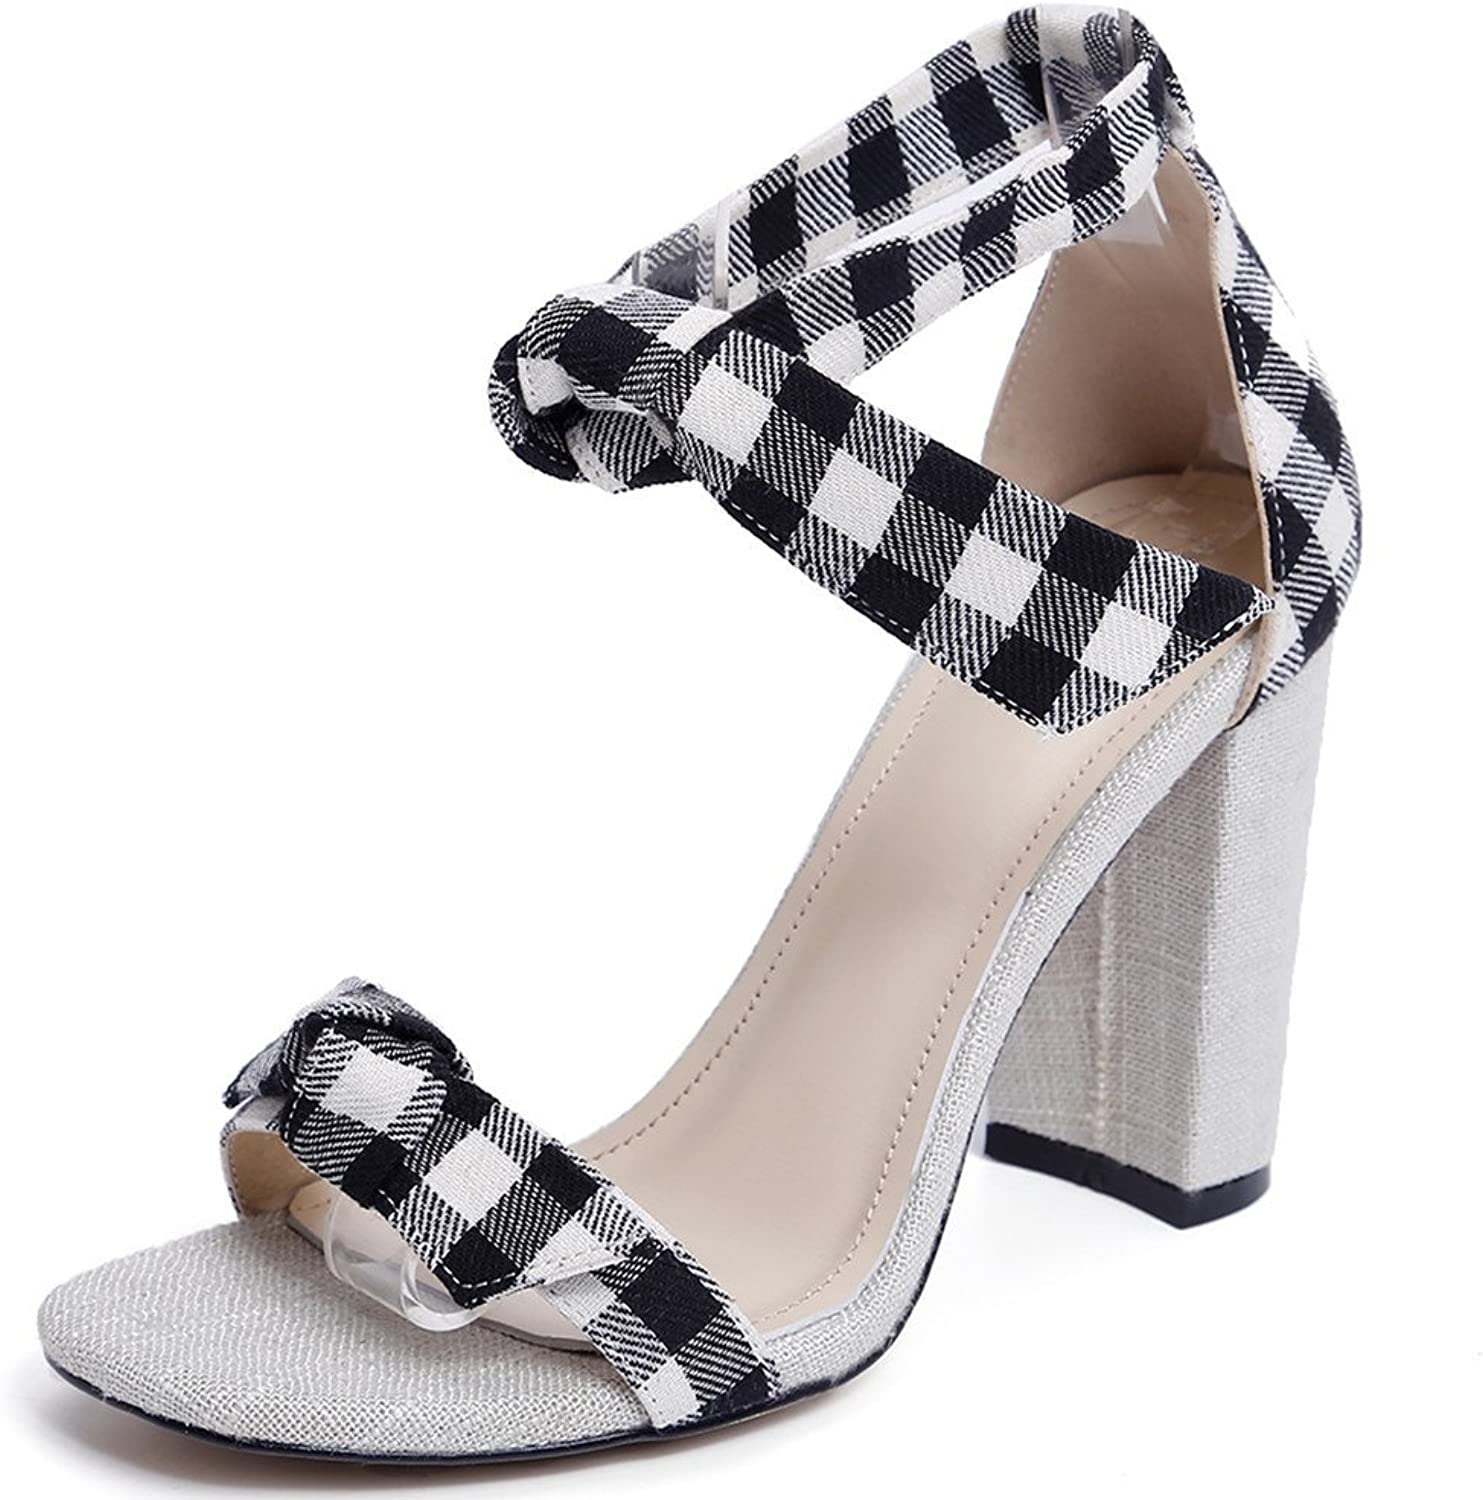 Nine Seven Fabric Women's Open Toe Chunky Heel Plaid Handmade High Heels Dress Sandals with Bow